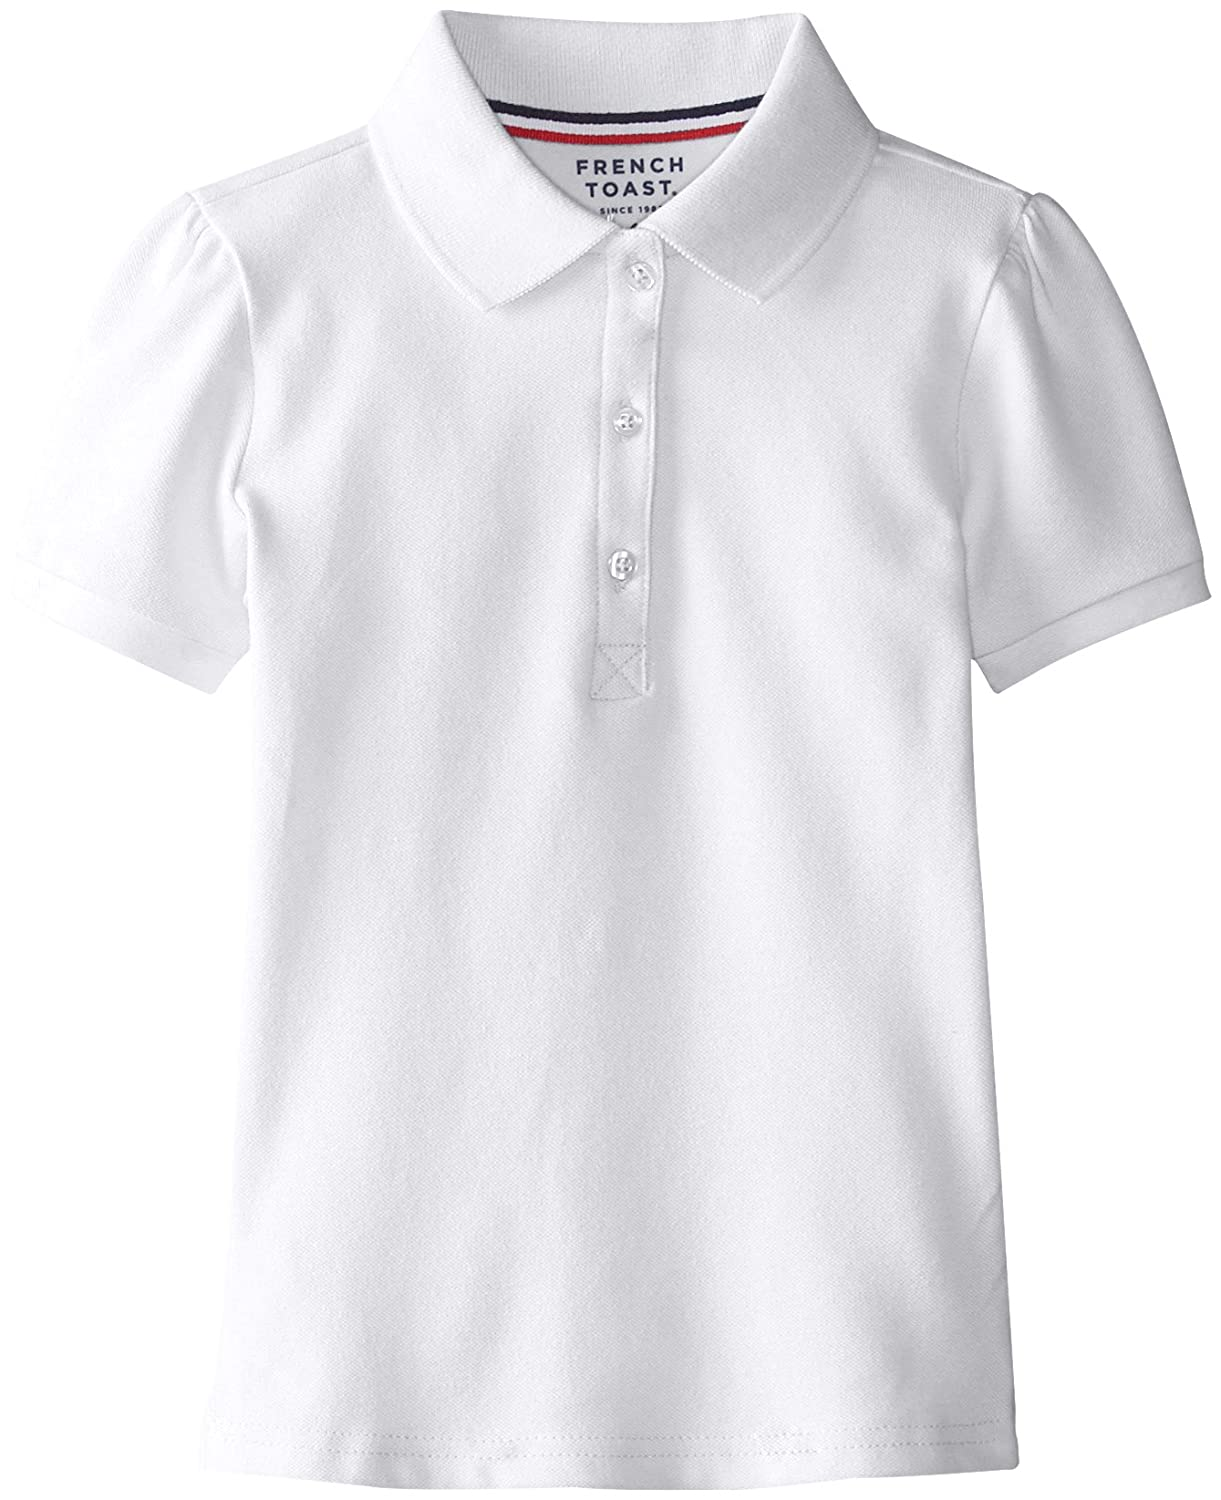 French Toast Little Girls Short Sleeve Stretch Pique Polo 6 French Toast Girls 2-6x Uniforms White